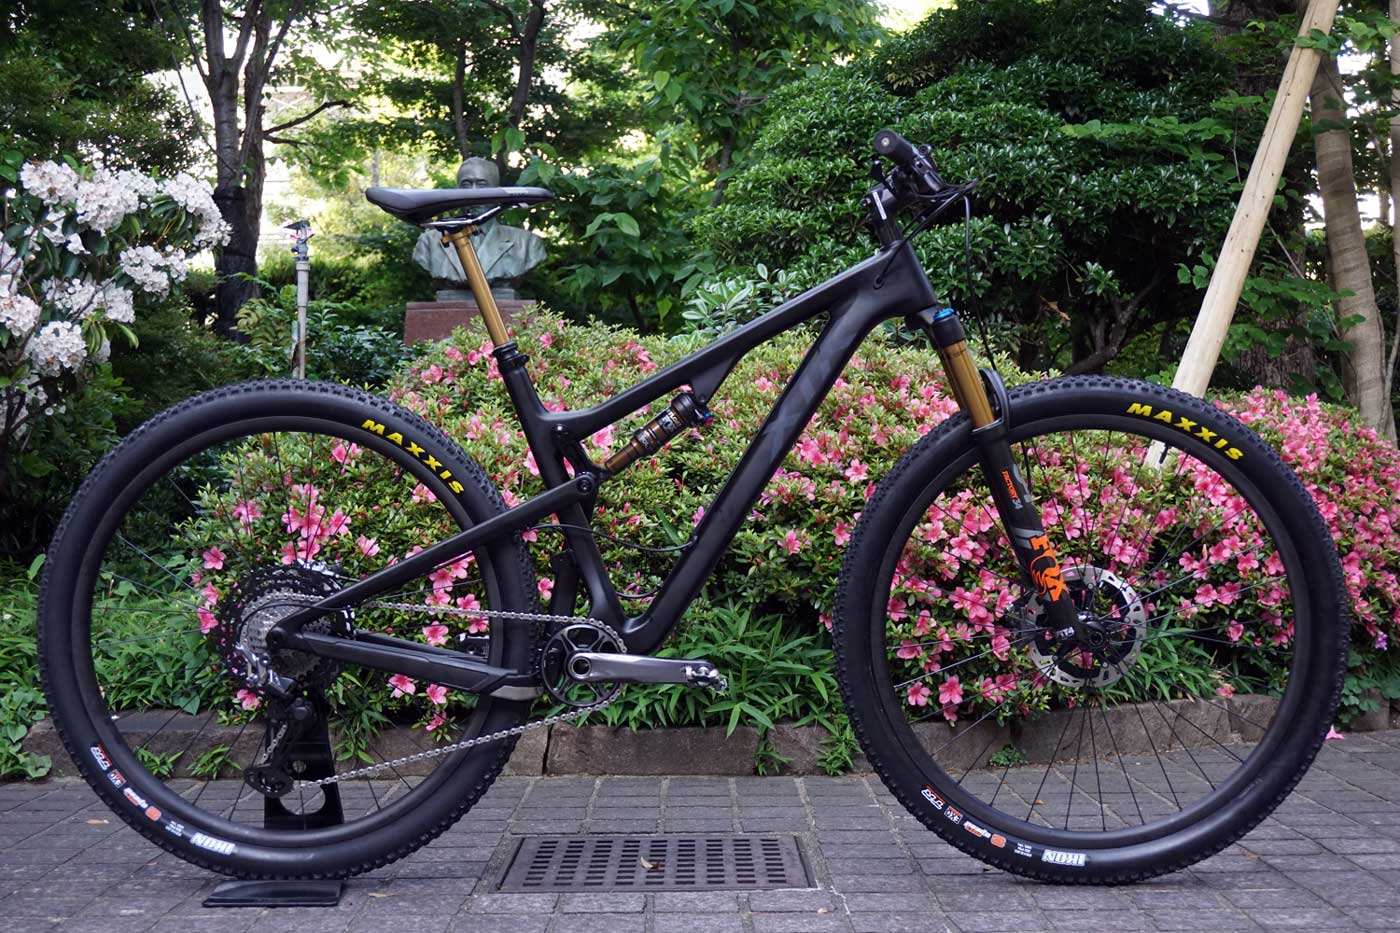 595658892 2019 Shimano XTR M9100 photos installed on the bike with product  development design story and background